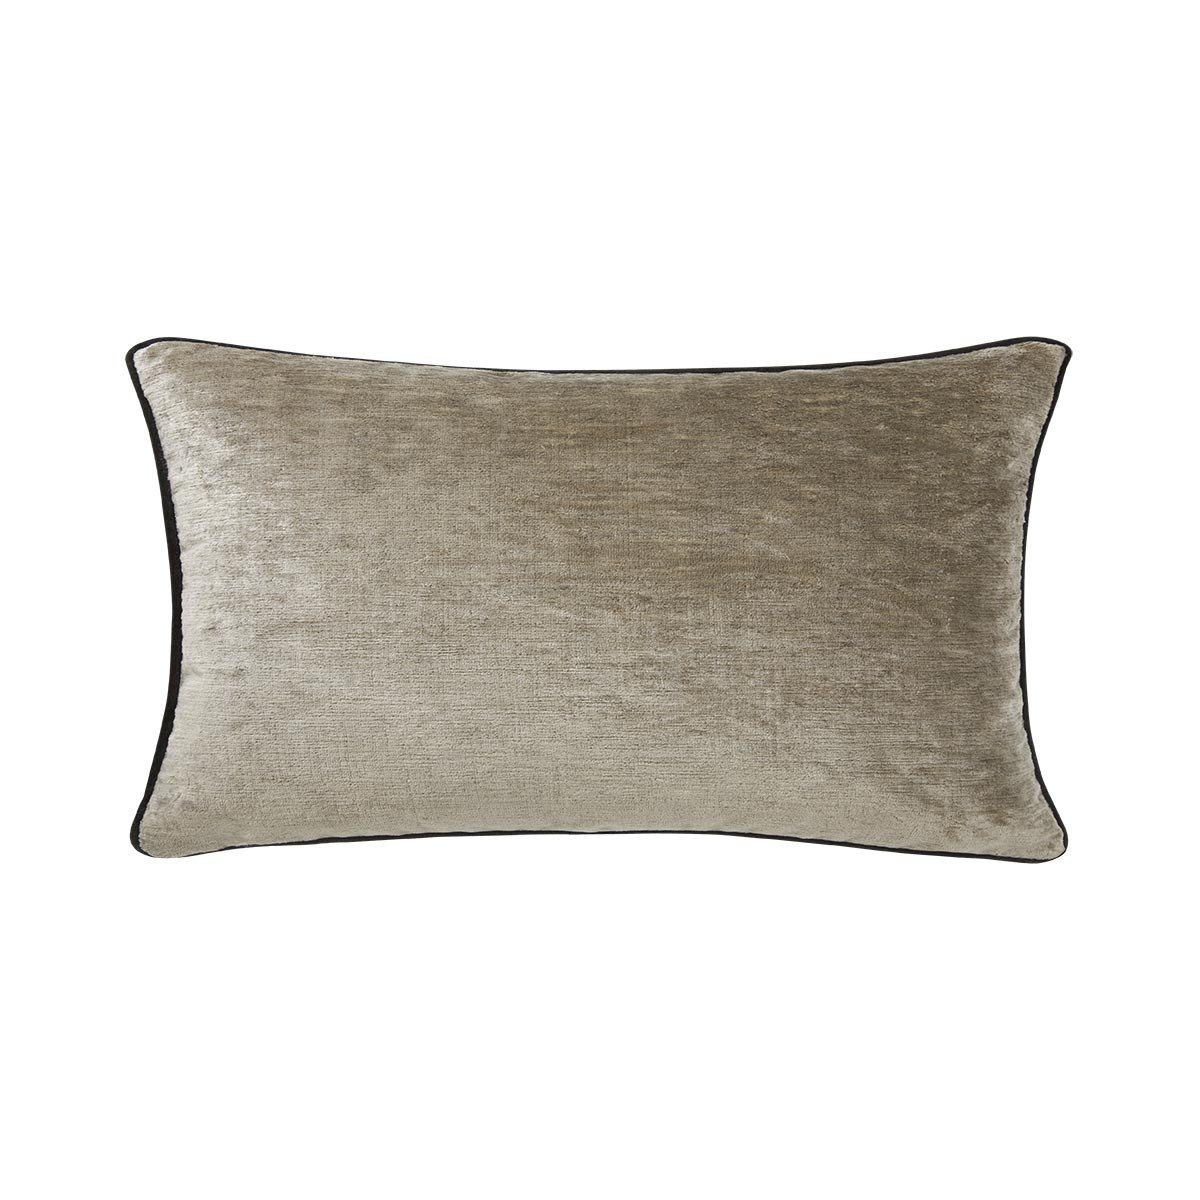 Boromee Argent Lumbar Pillow by Iosis